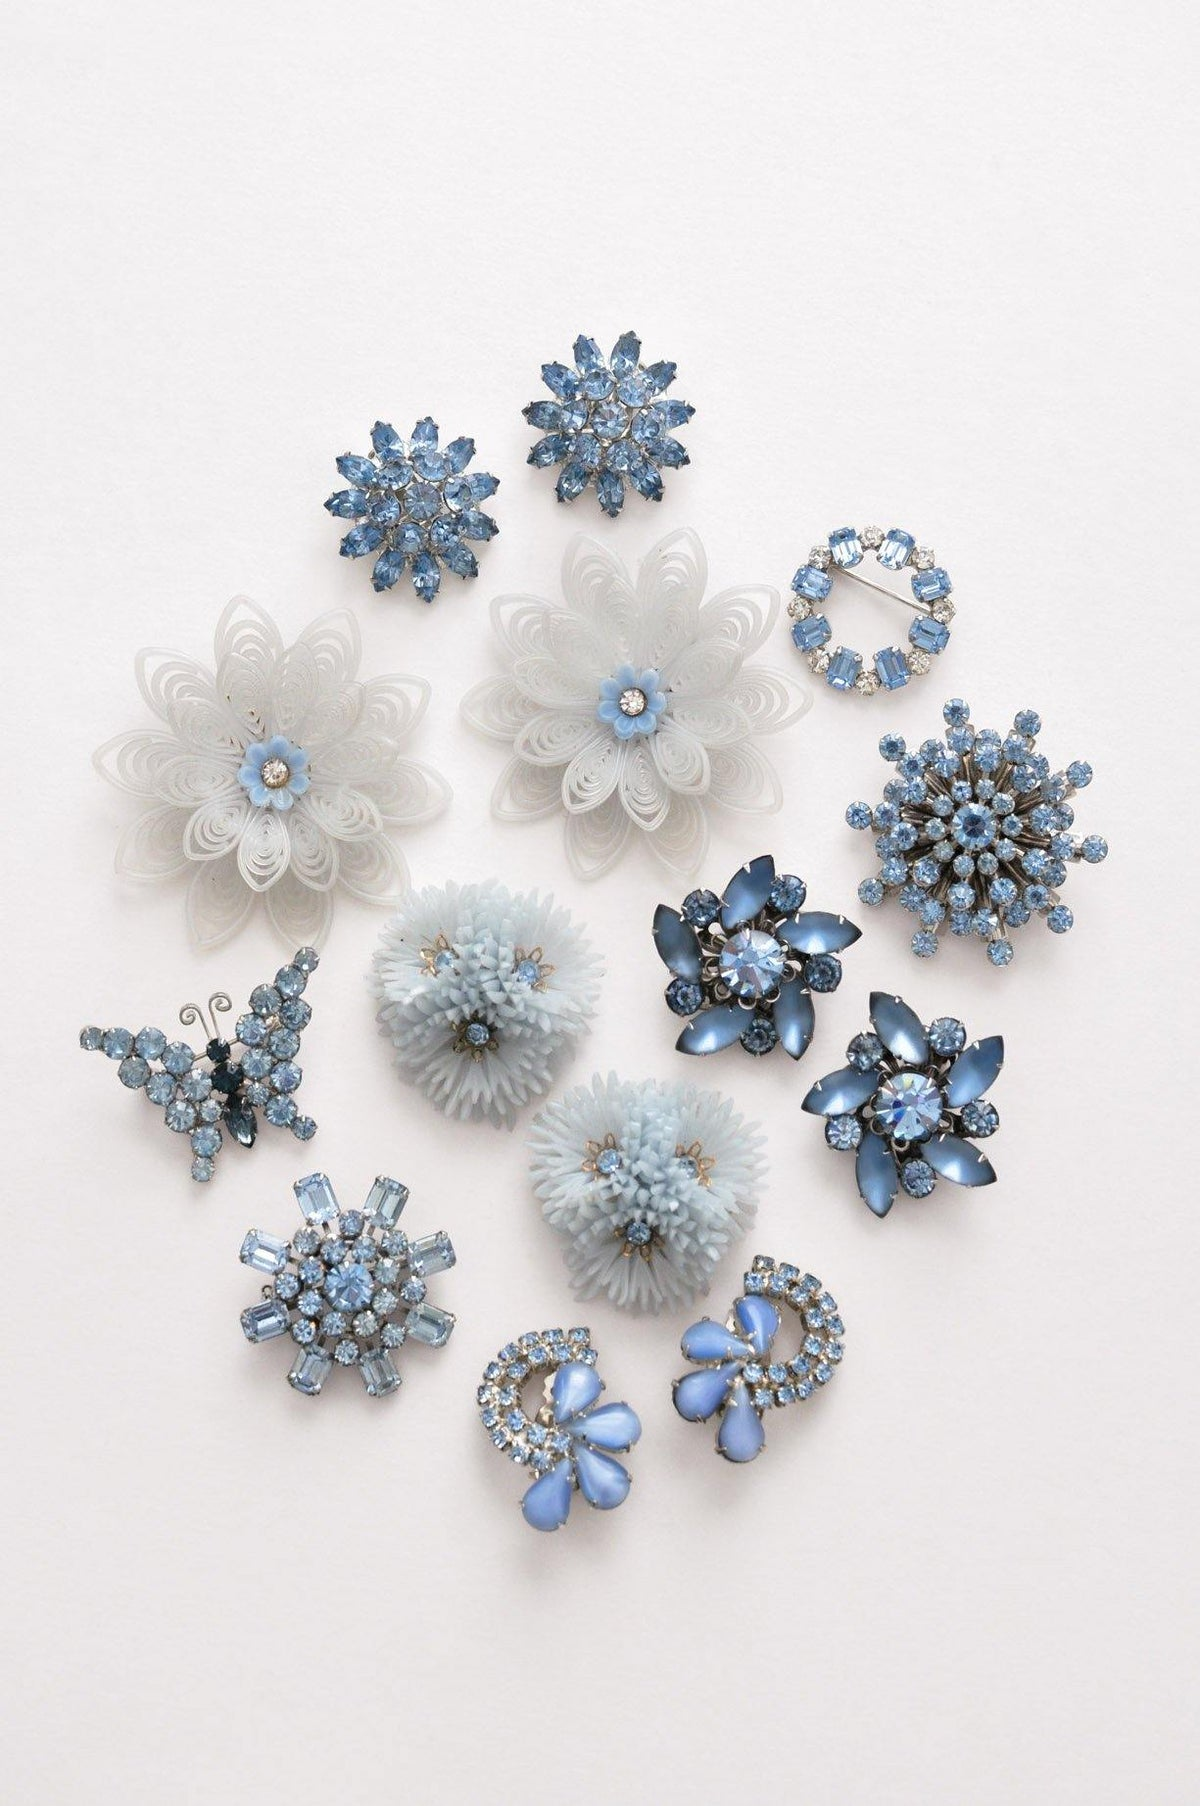 Vintage blue rhinestone burst earrings from Sweet & Spark.